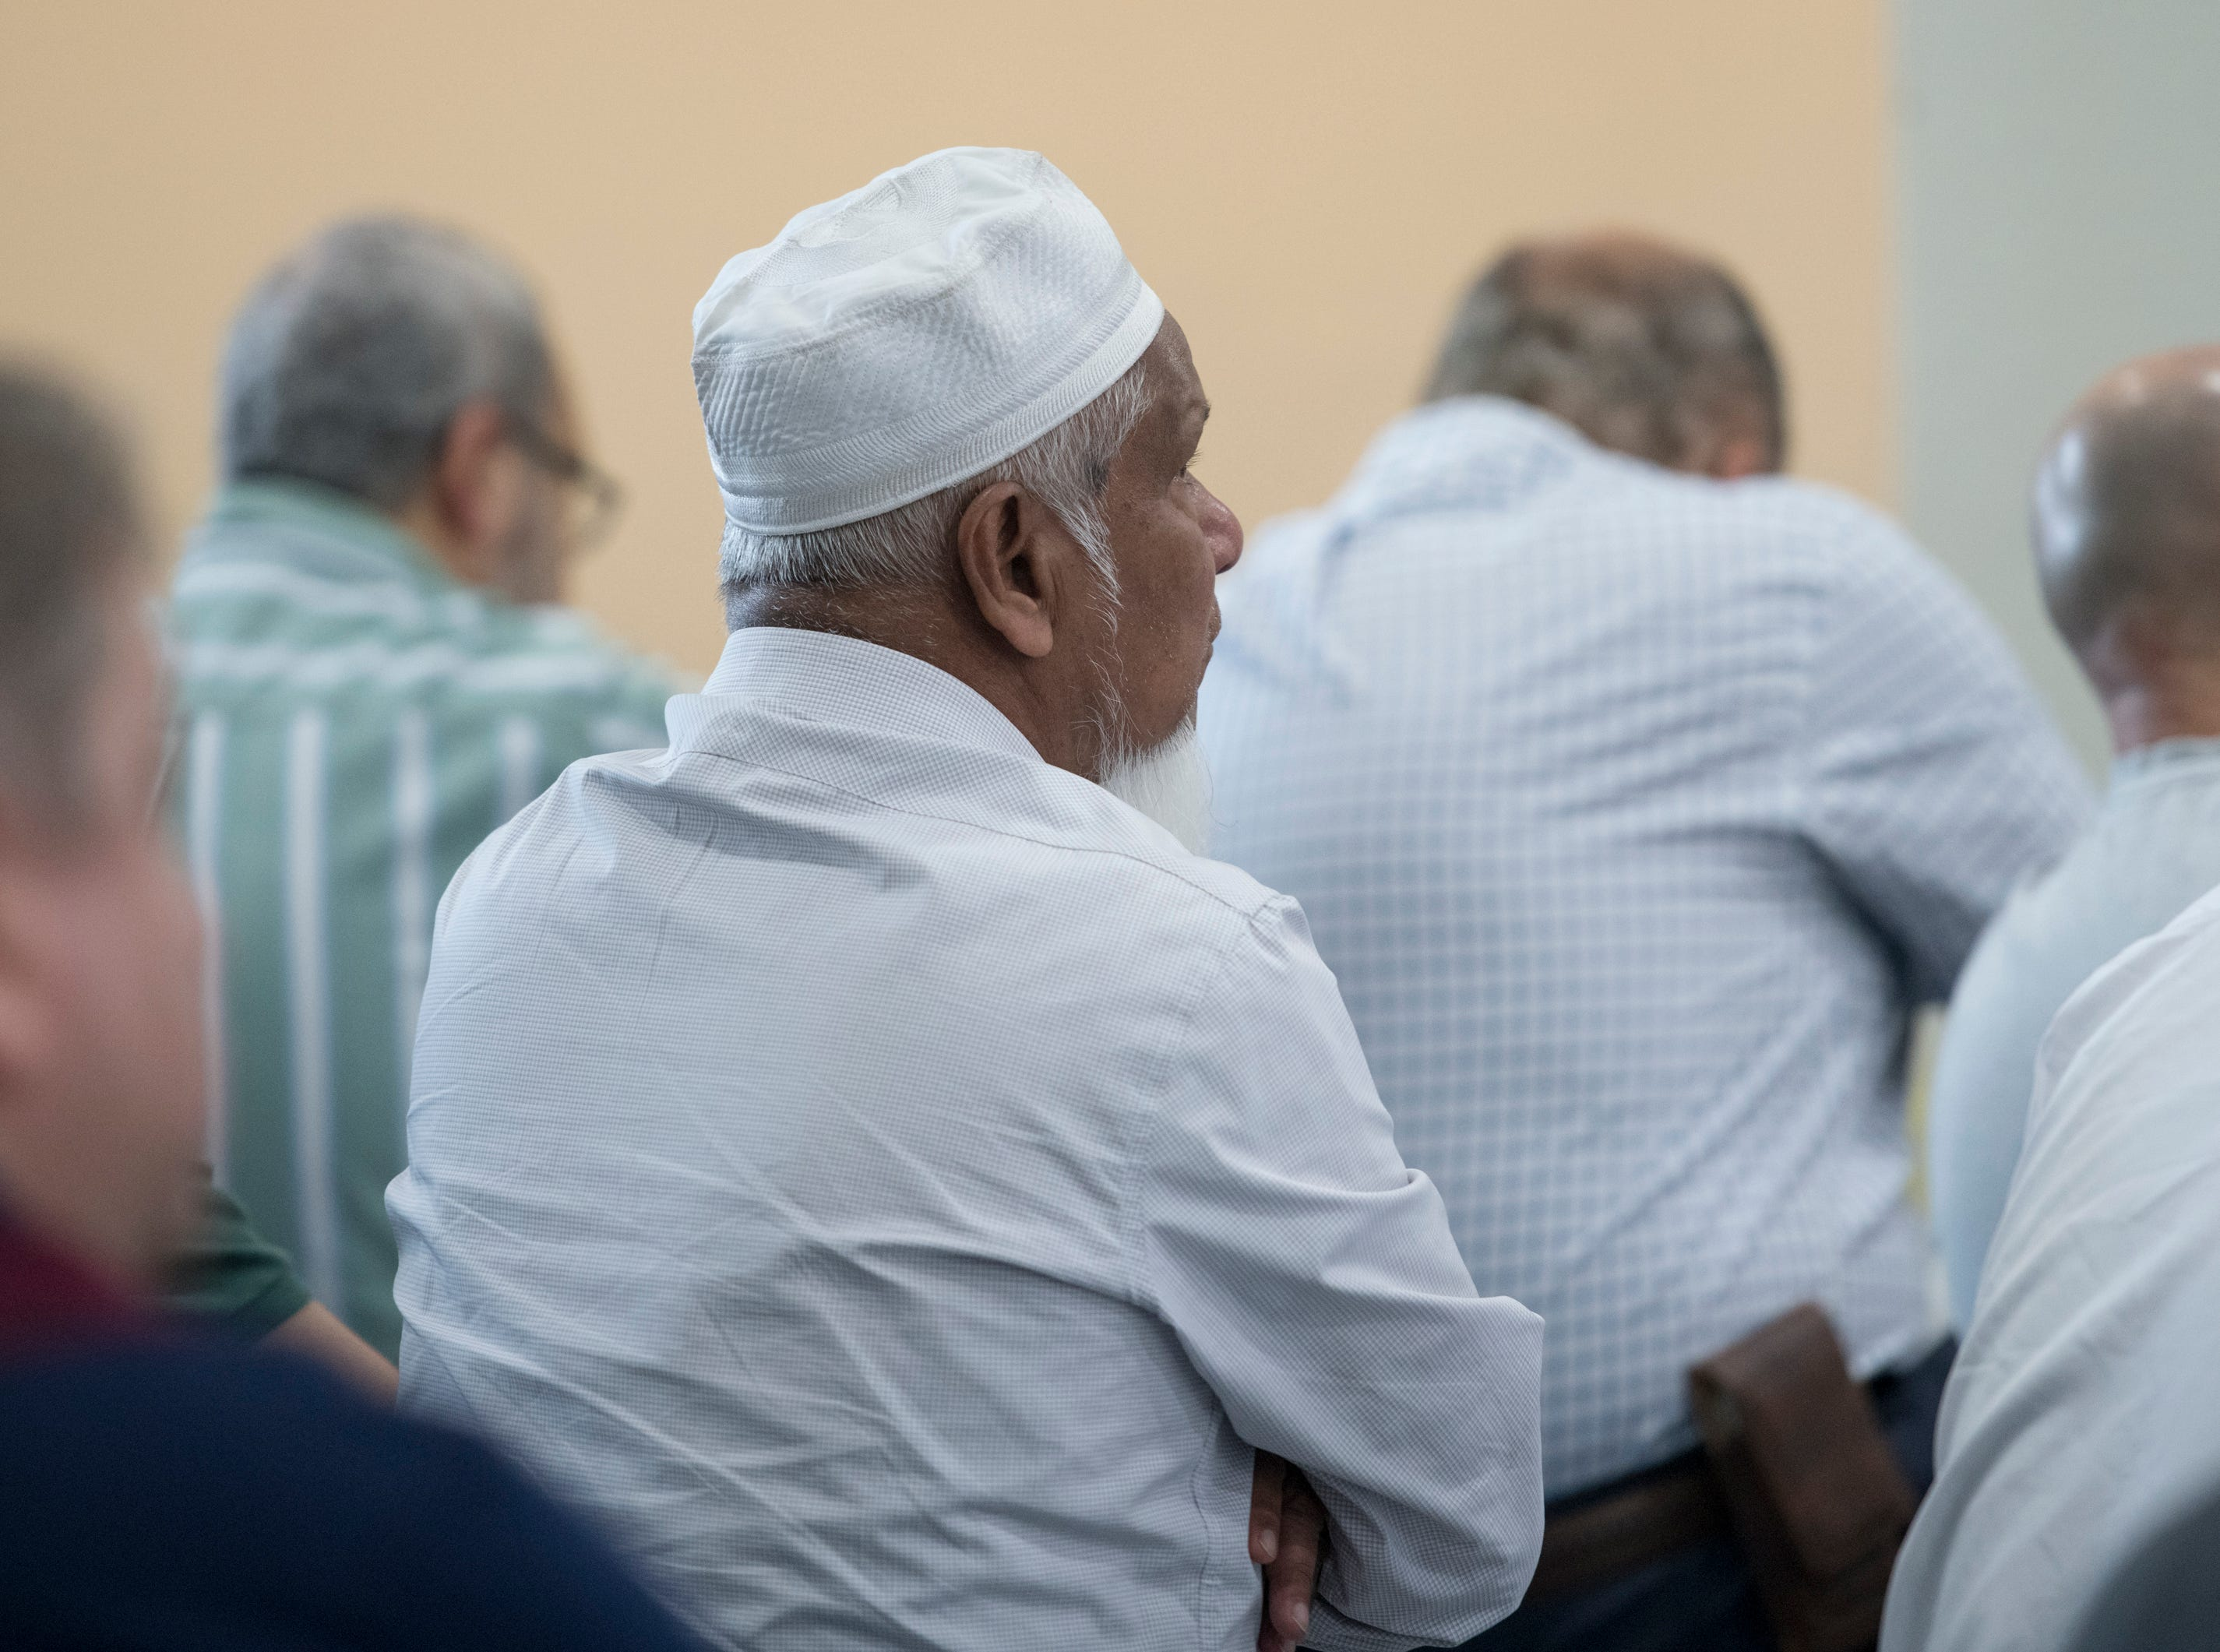 Worshipers listen to the Imam speak during Jumu'ah (Friday Prayer) at the Islamic Center of Northwest Florida in Pensacola on Friday, March 15, 2019.